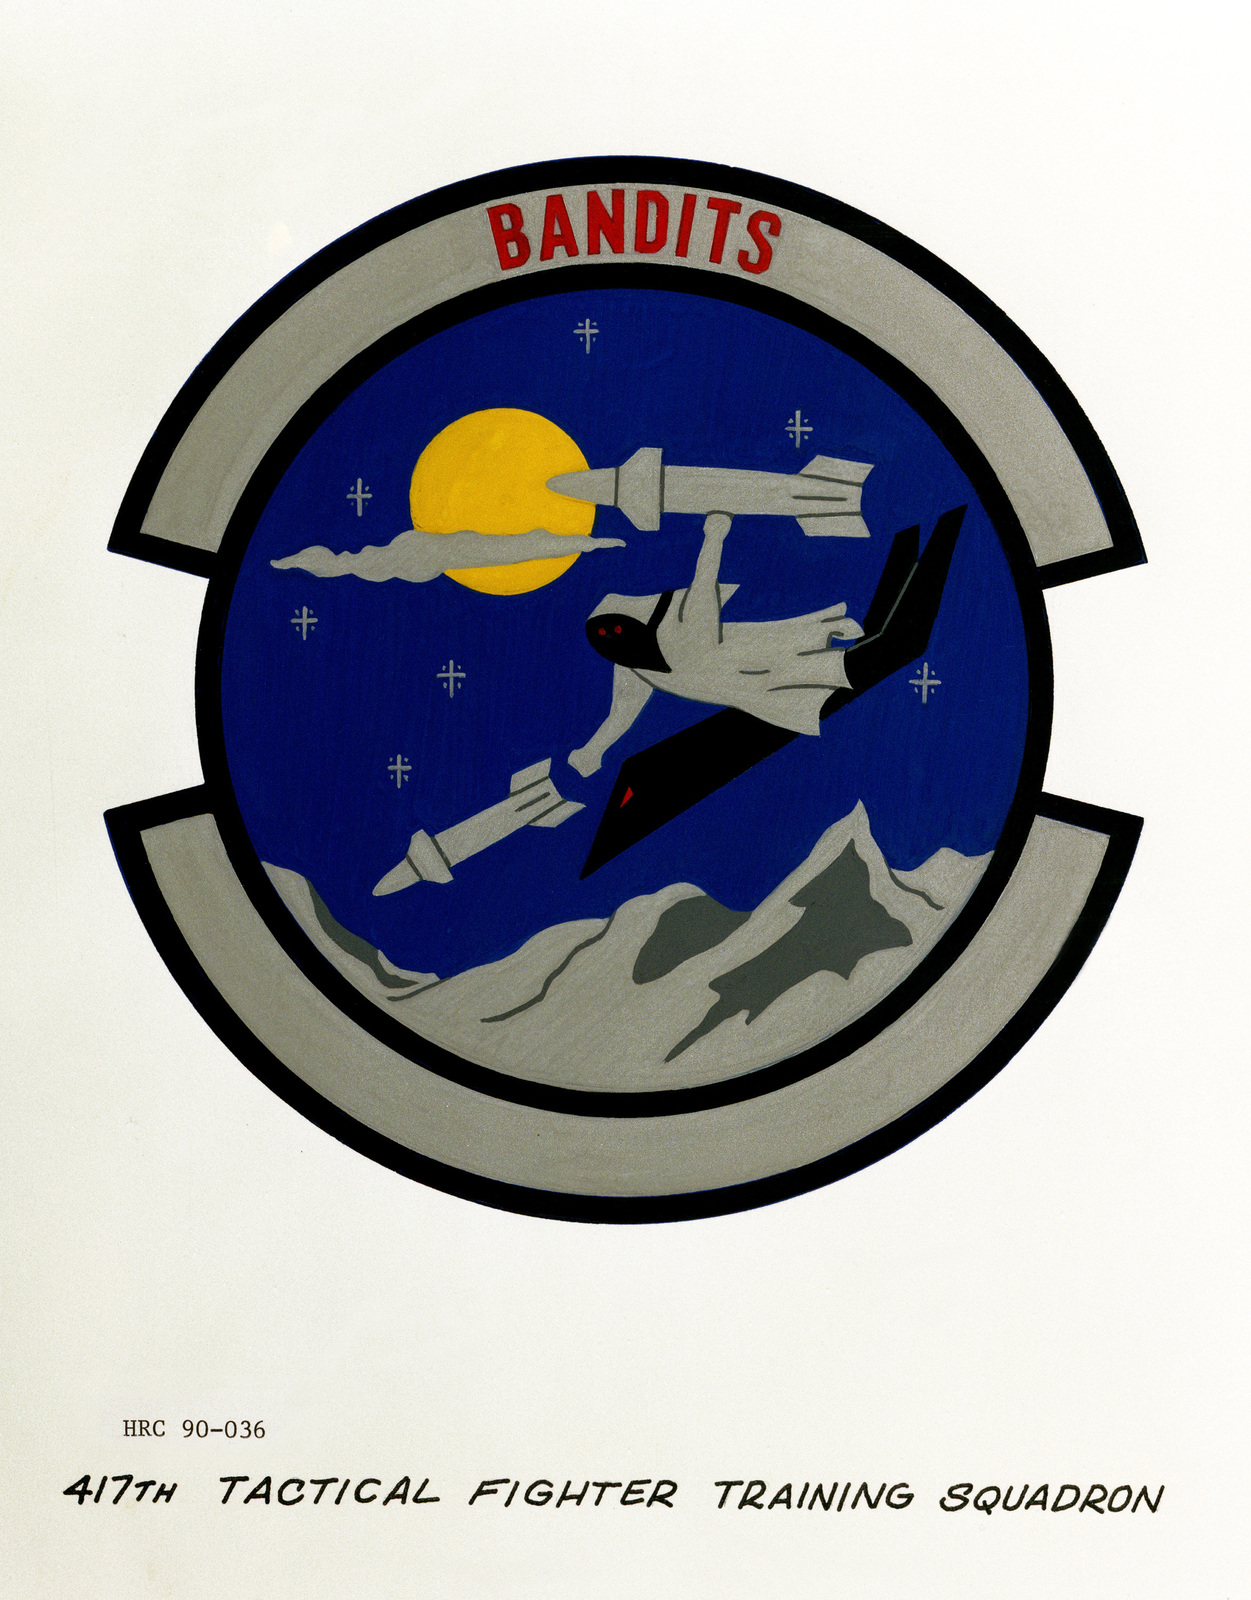 Approved insignia for: 417th Tactical Fighter Training Squadron